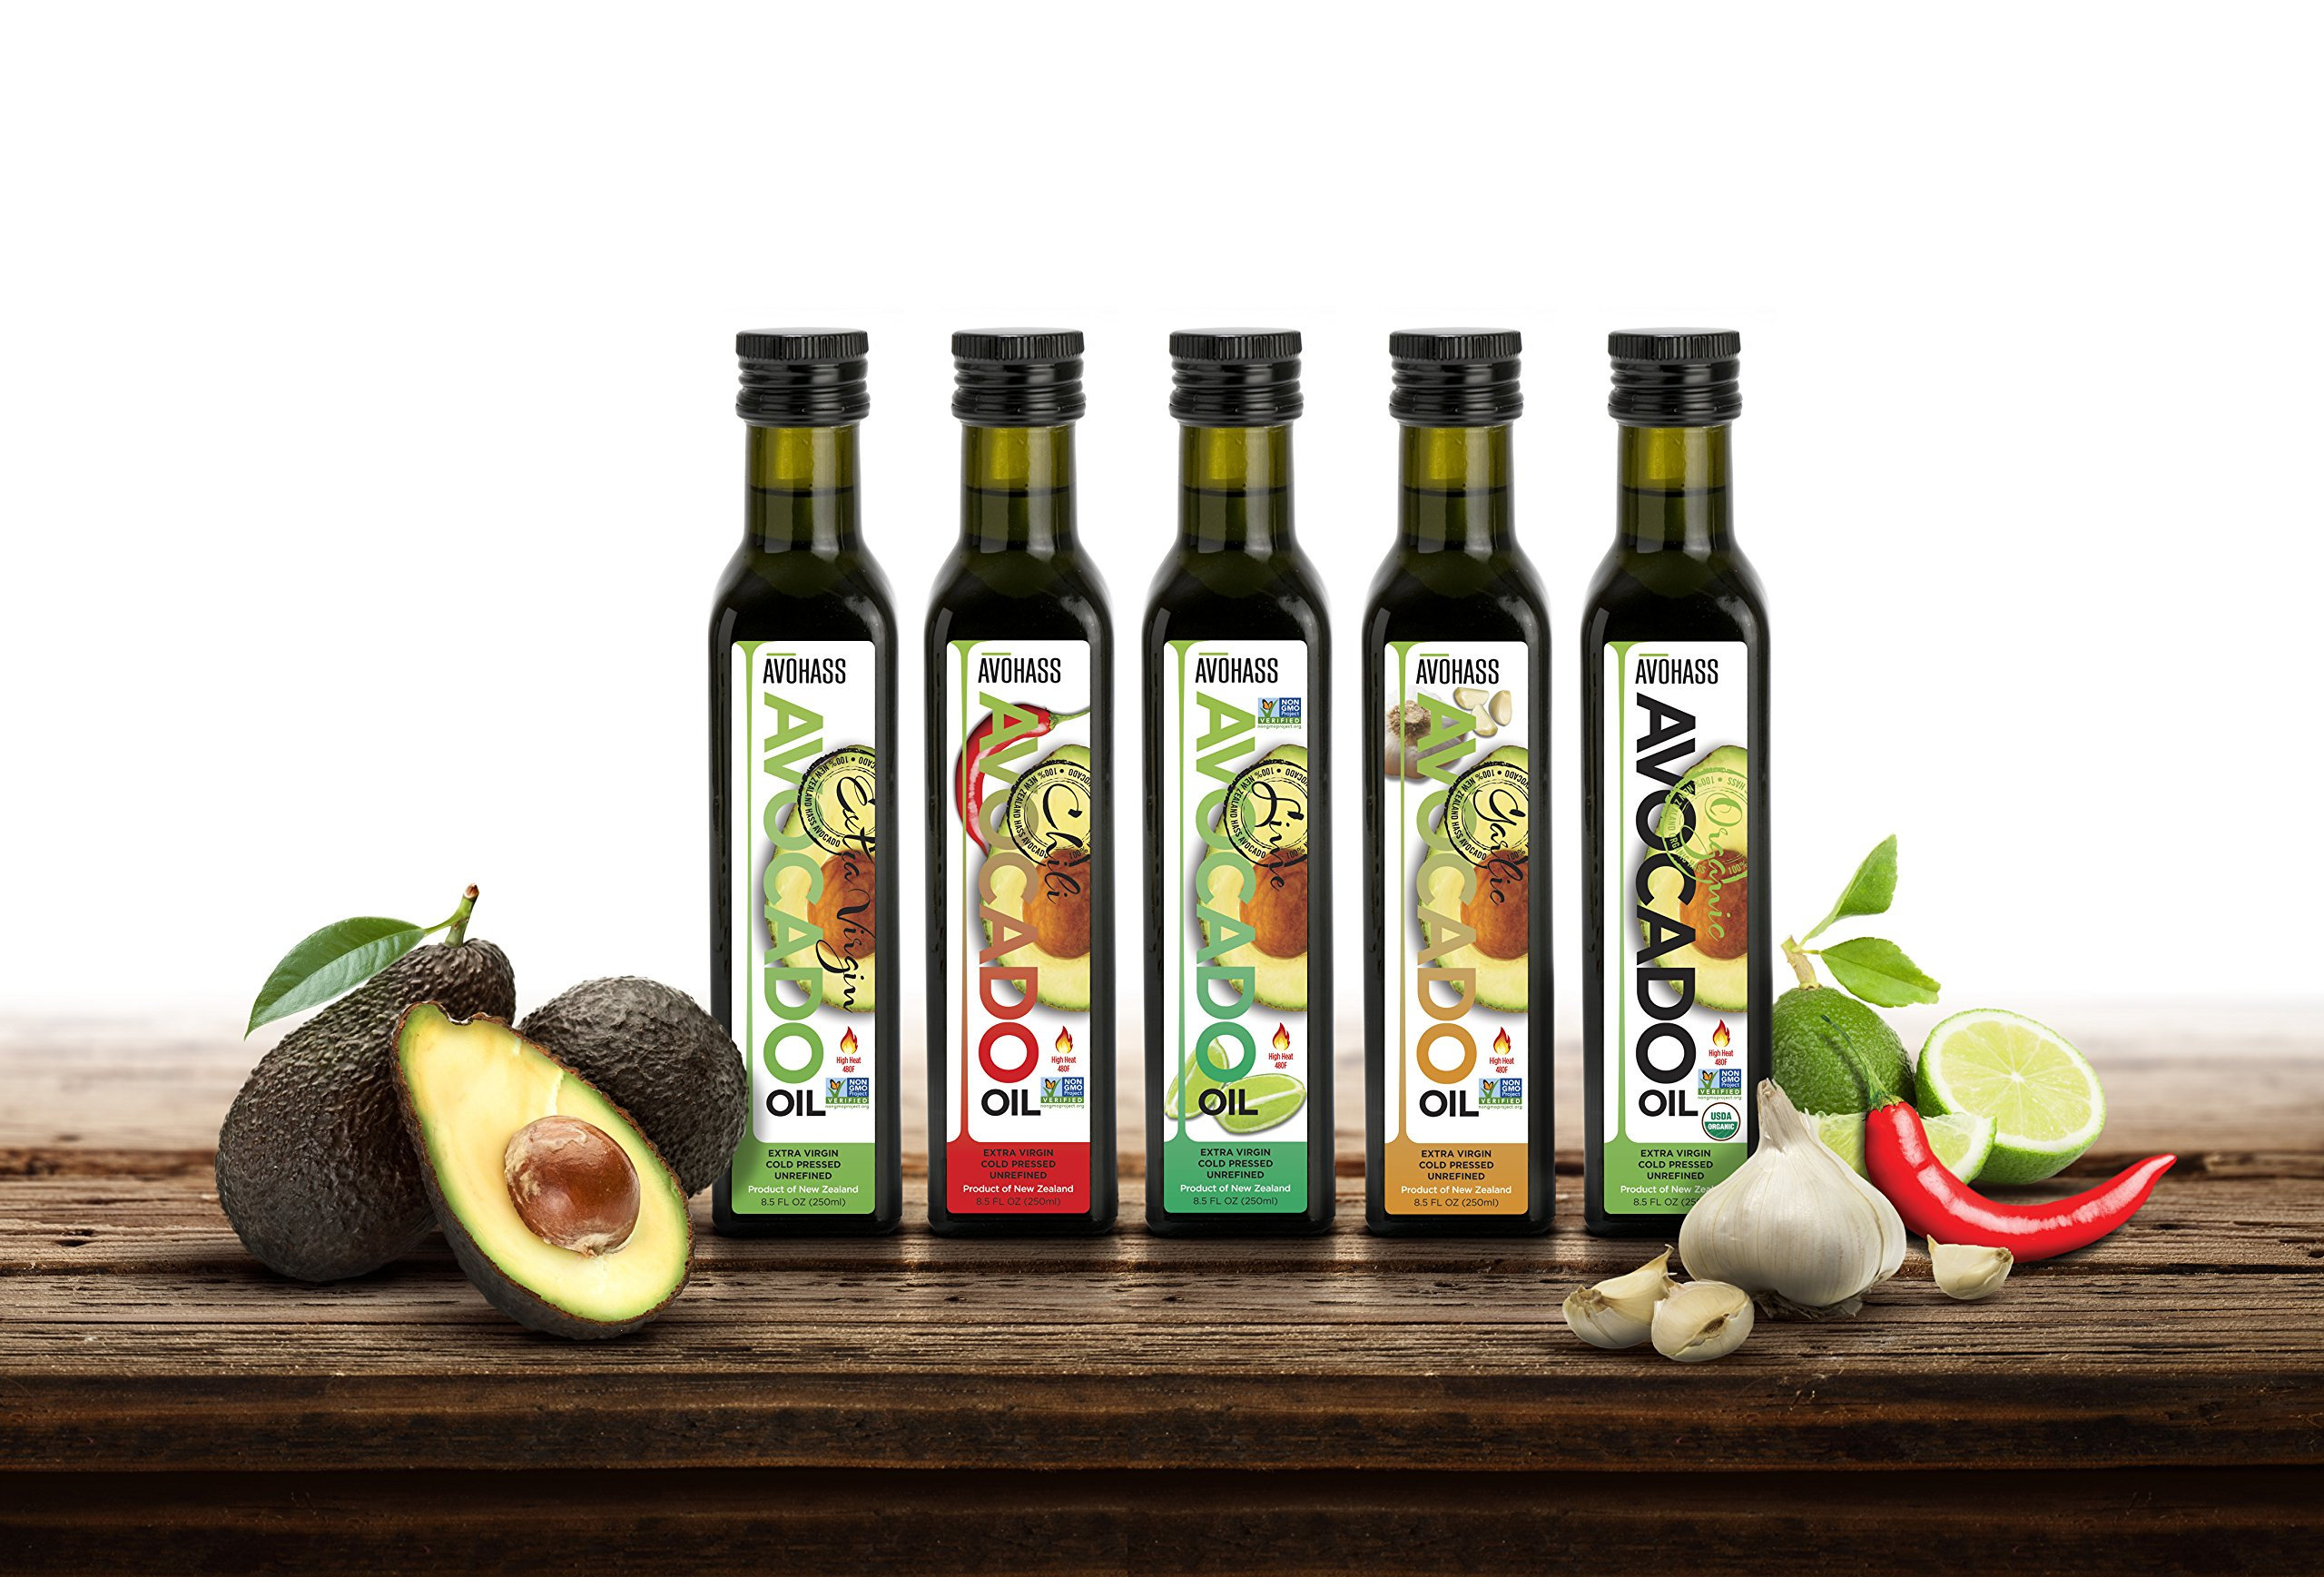 Avohass Extra Virgin Avocado Oil Ultimate Gift Collection 5 Bottle Assortment